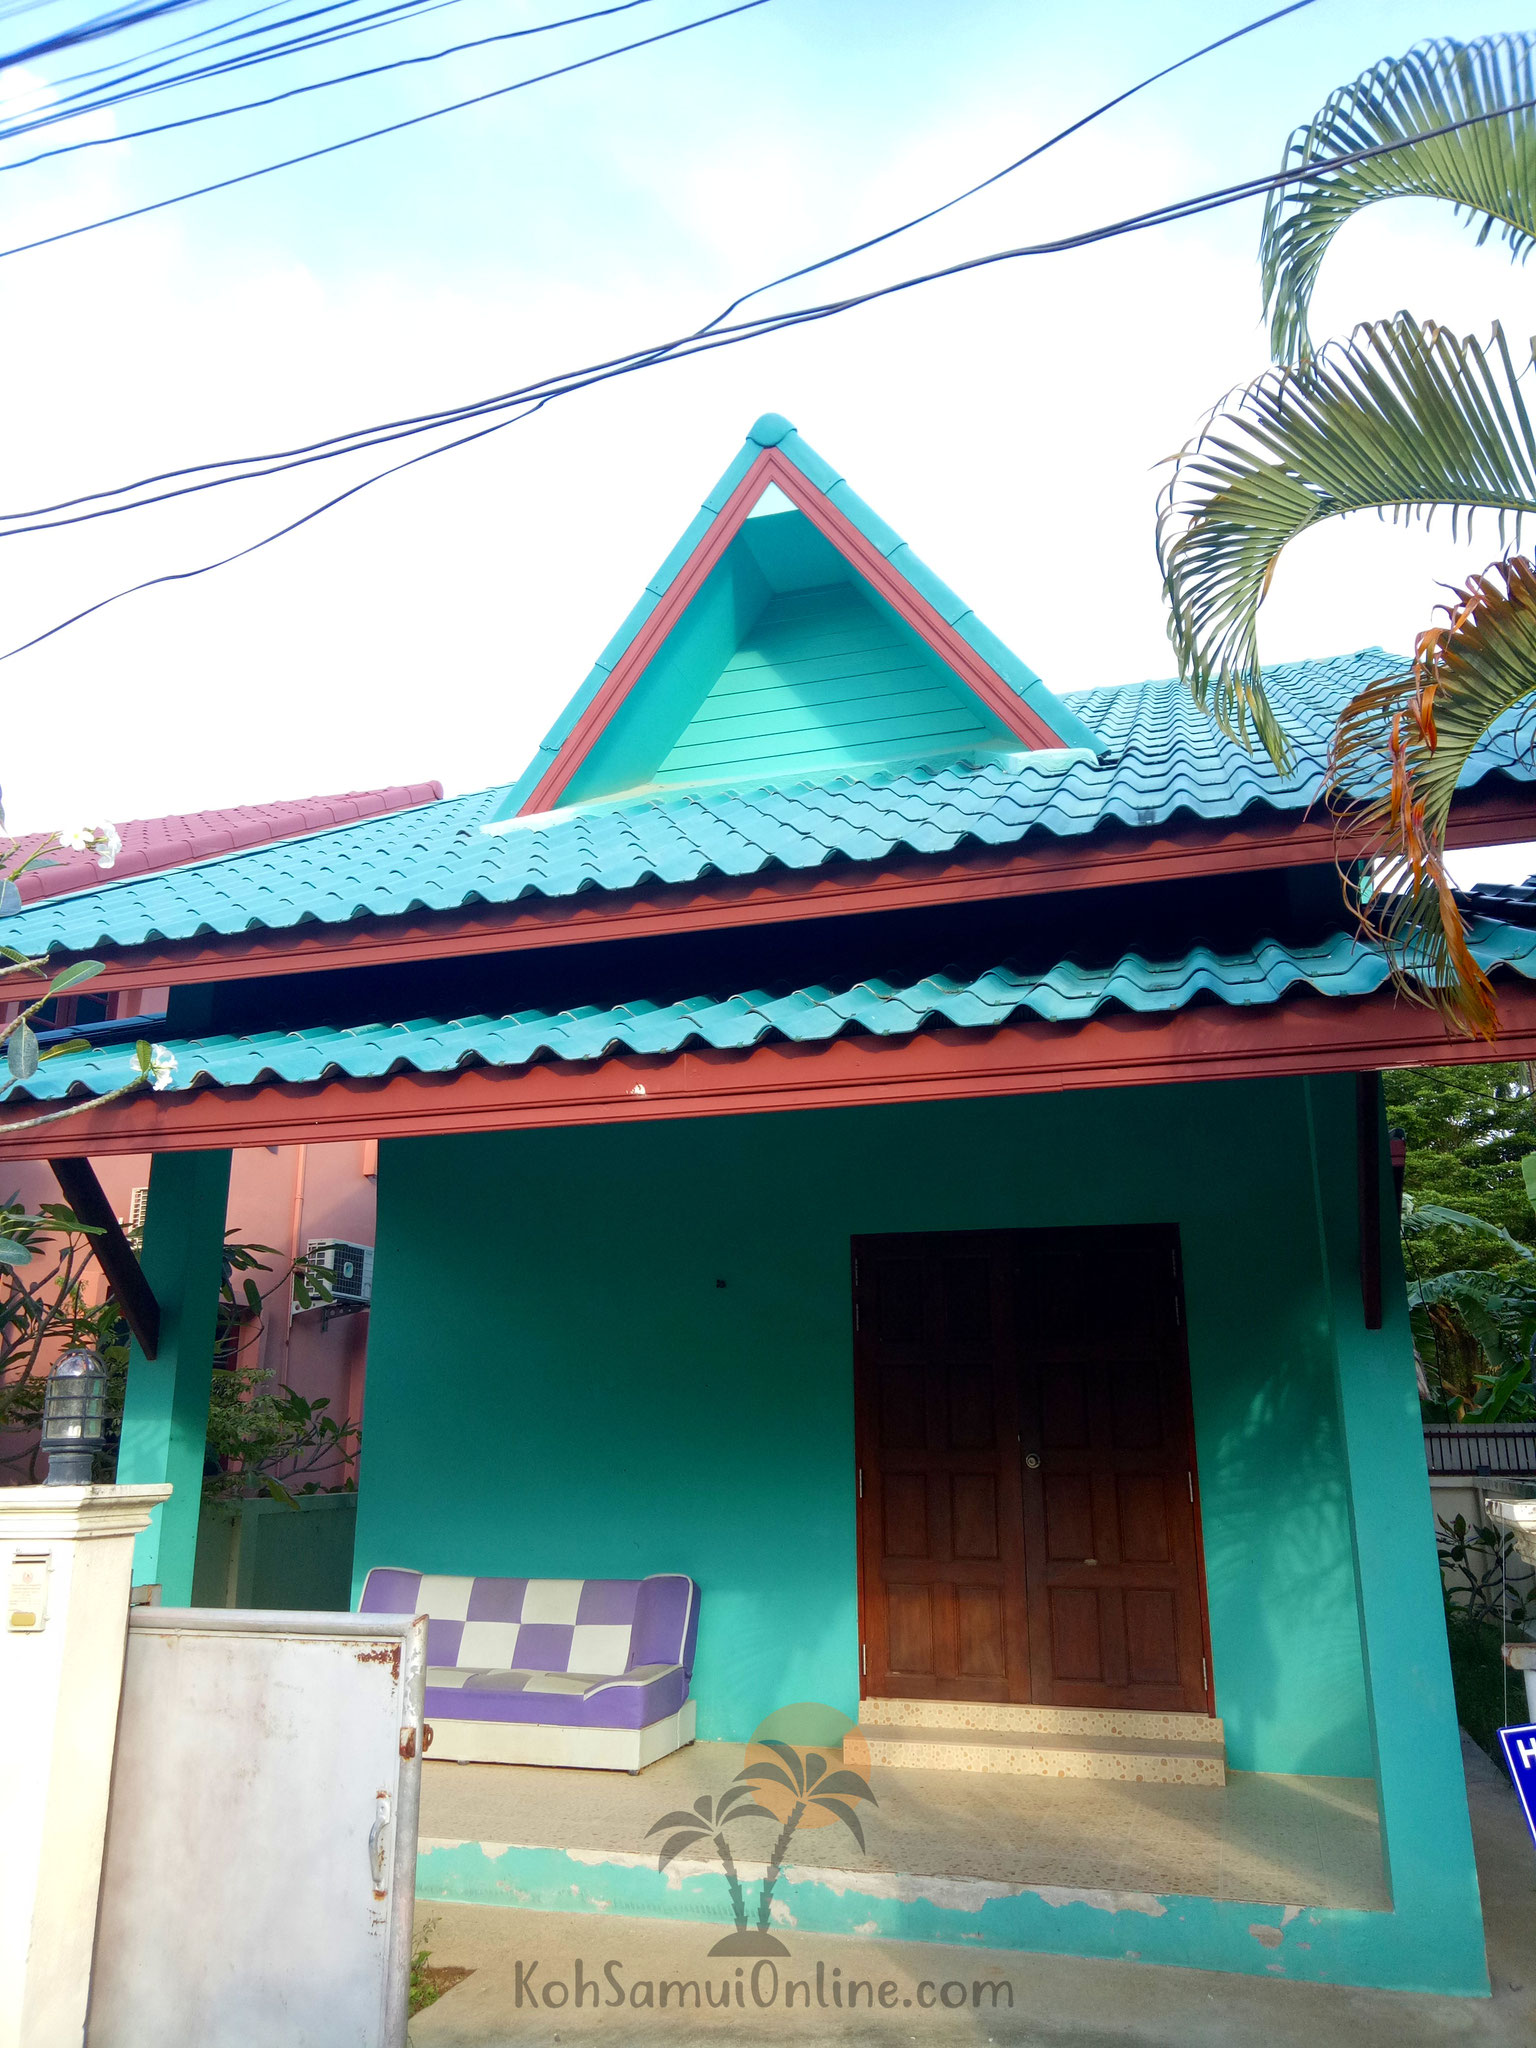 apartments and house to rent in koh samui